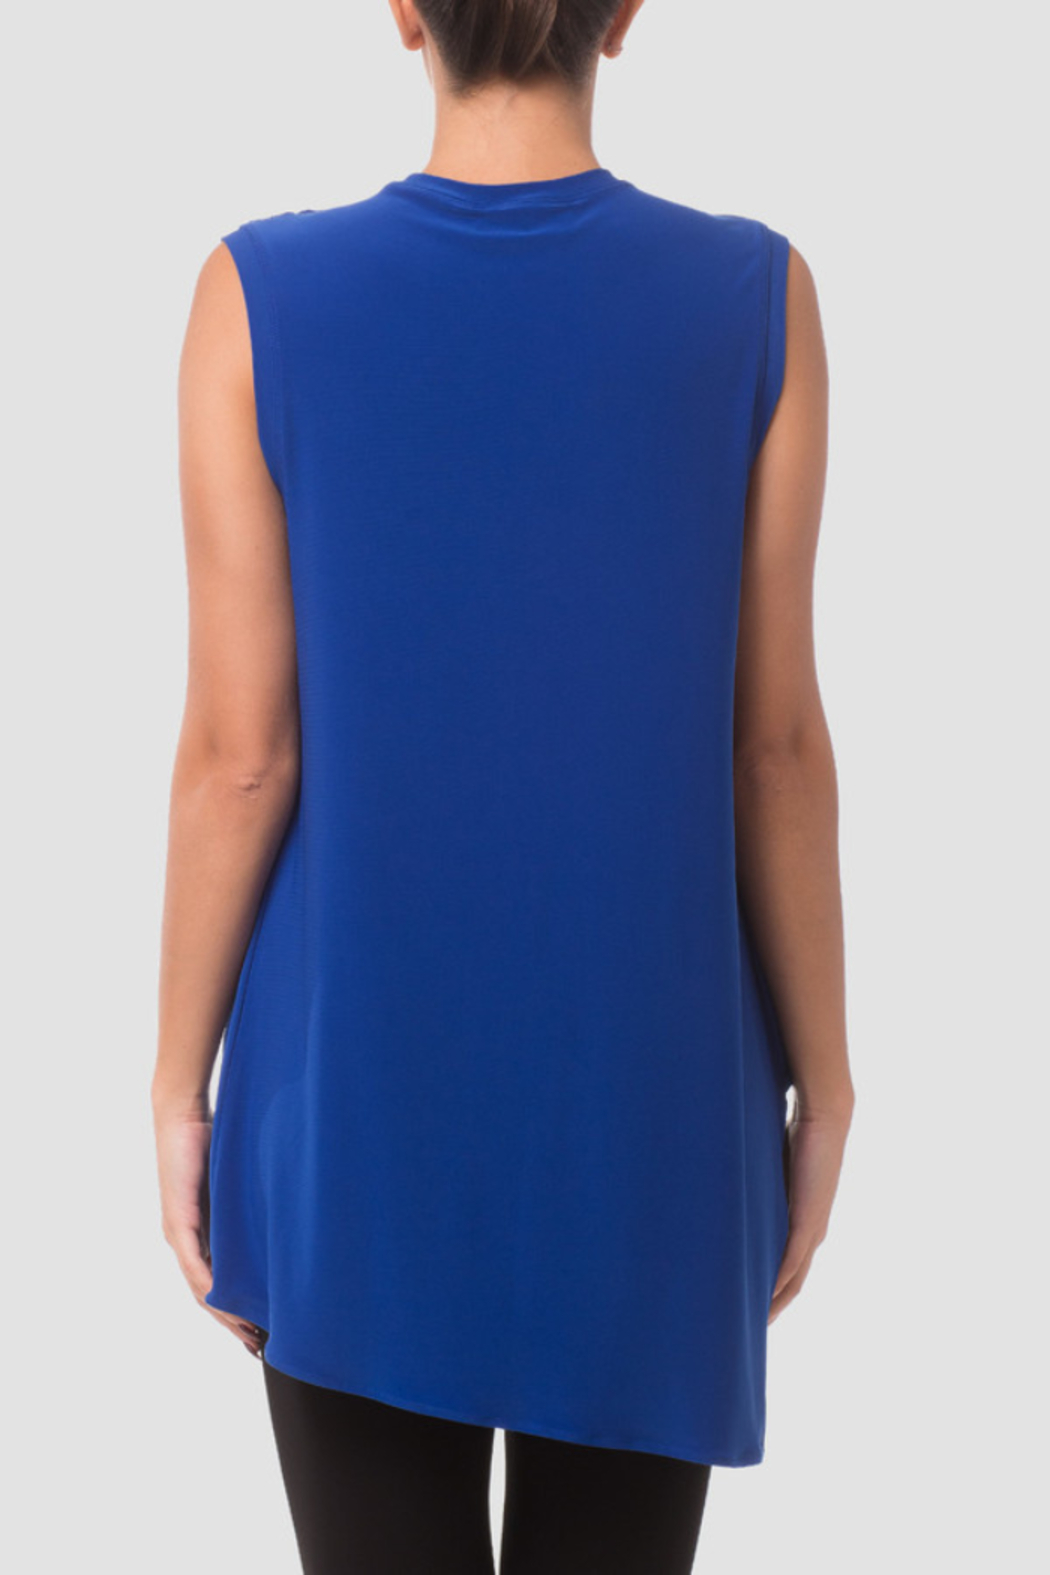 Joseph Ribkoff  Sleeveless Tunic, loose fit with a v-neck and wrap-style handkerchief hemline. - Front Full Image